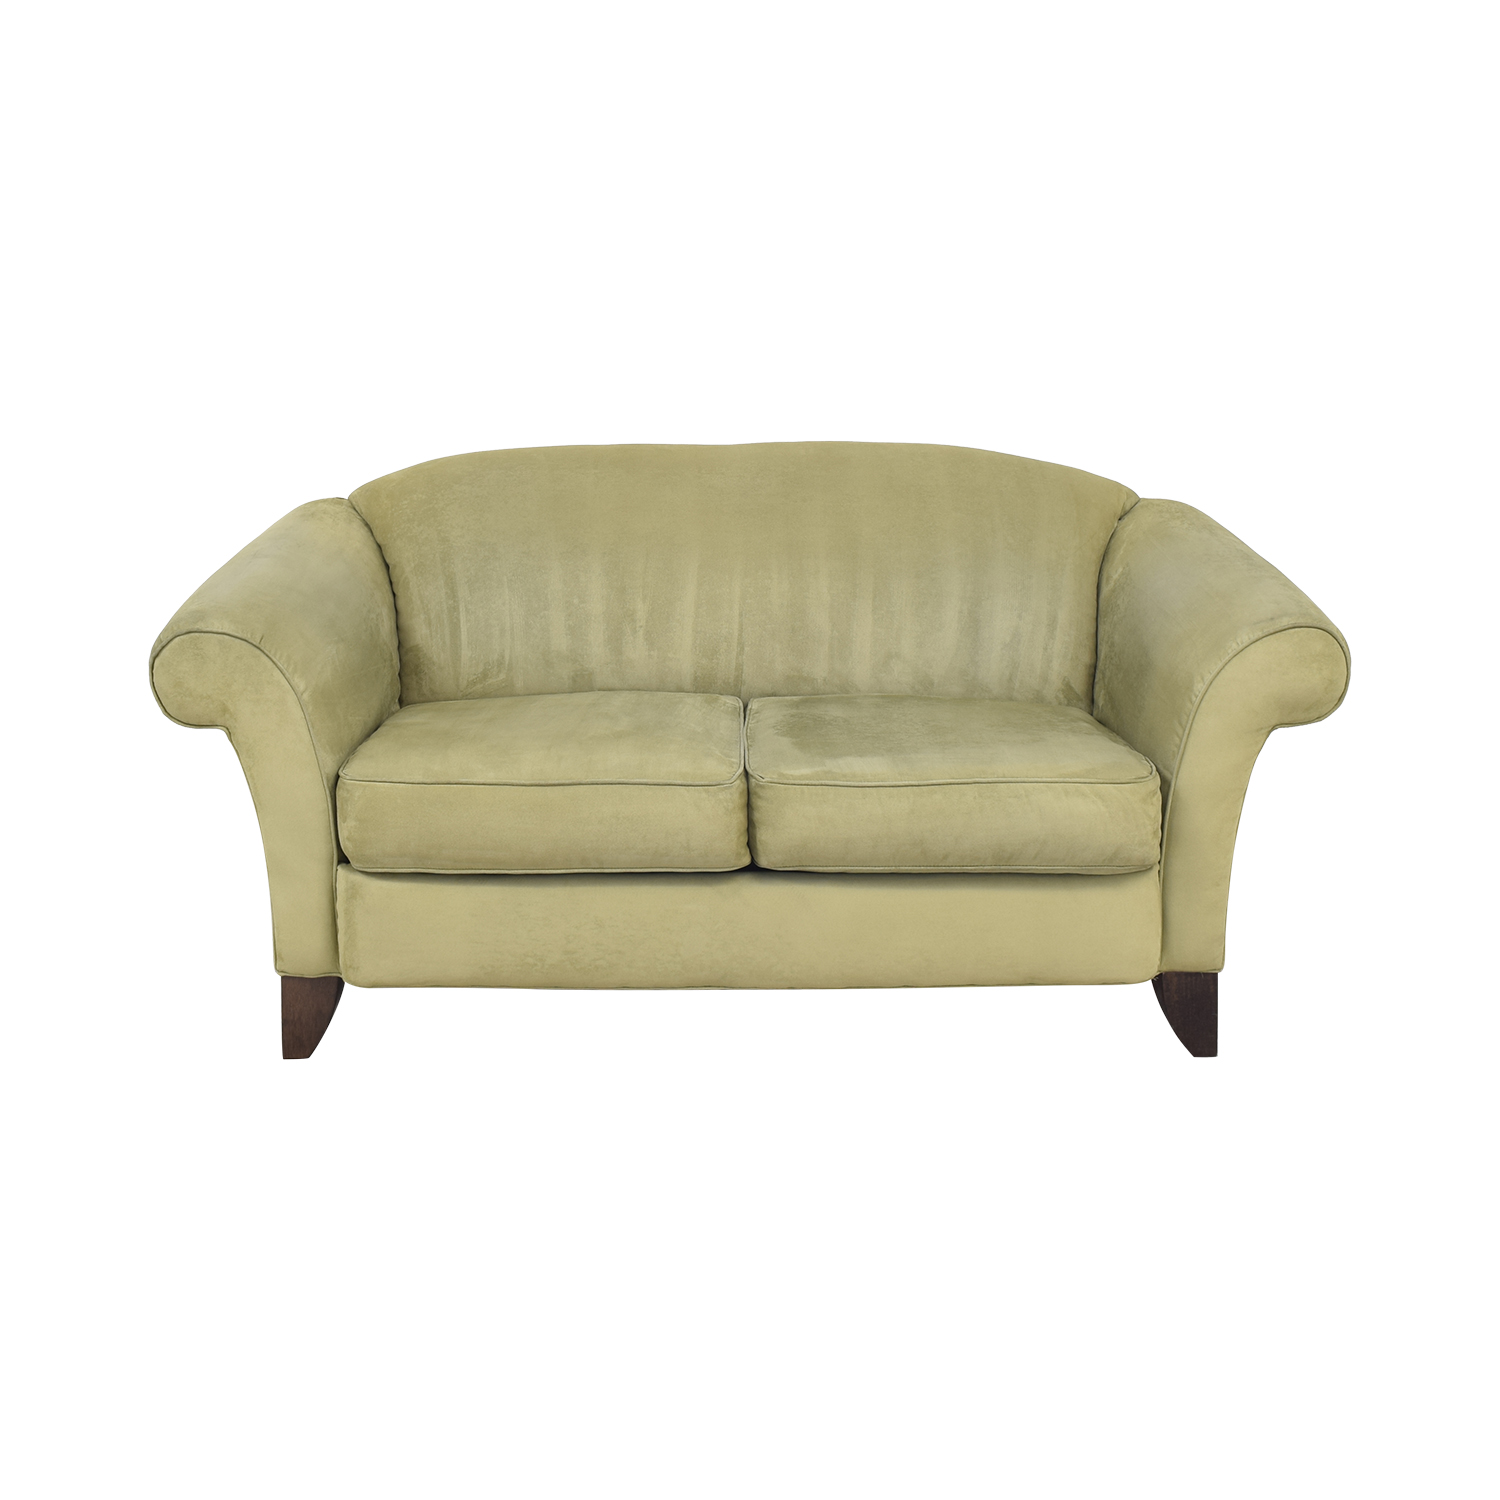 Rowe Furniture Rowe Furniture Roll Arm Loveseat discount